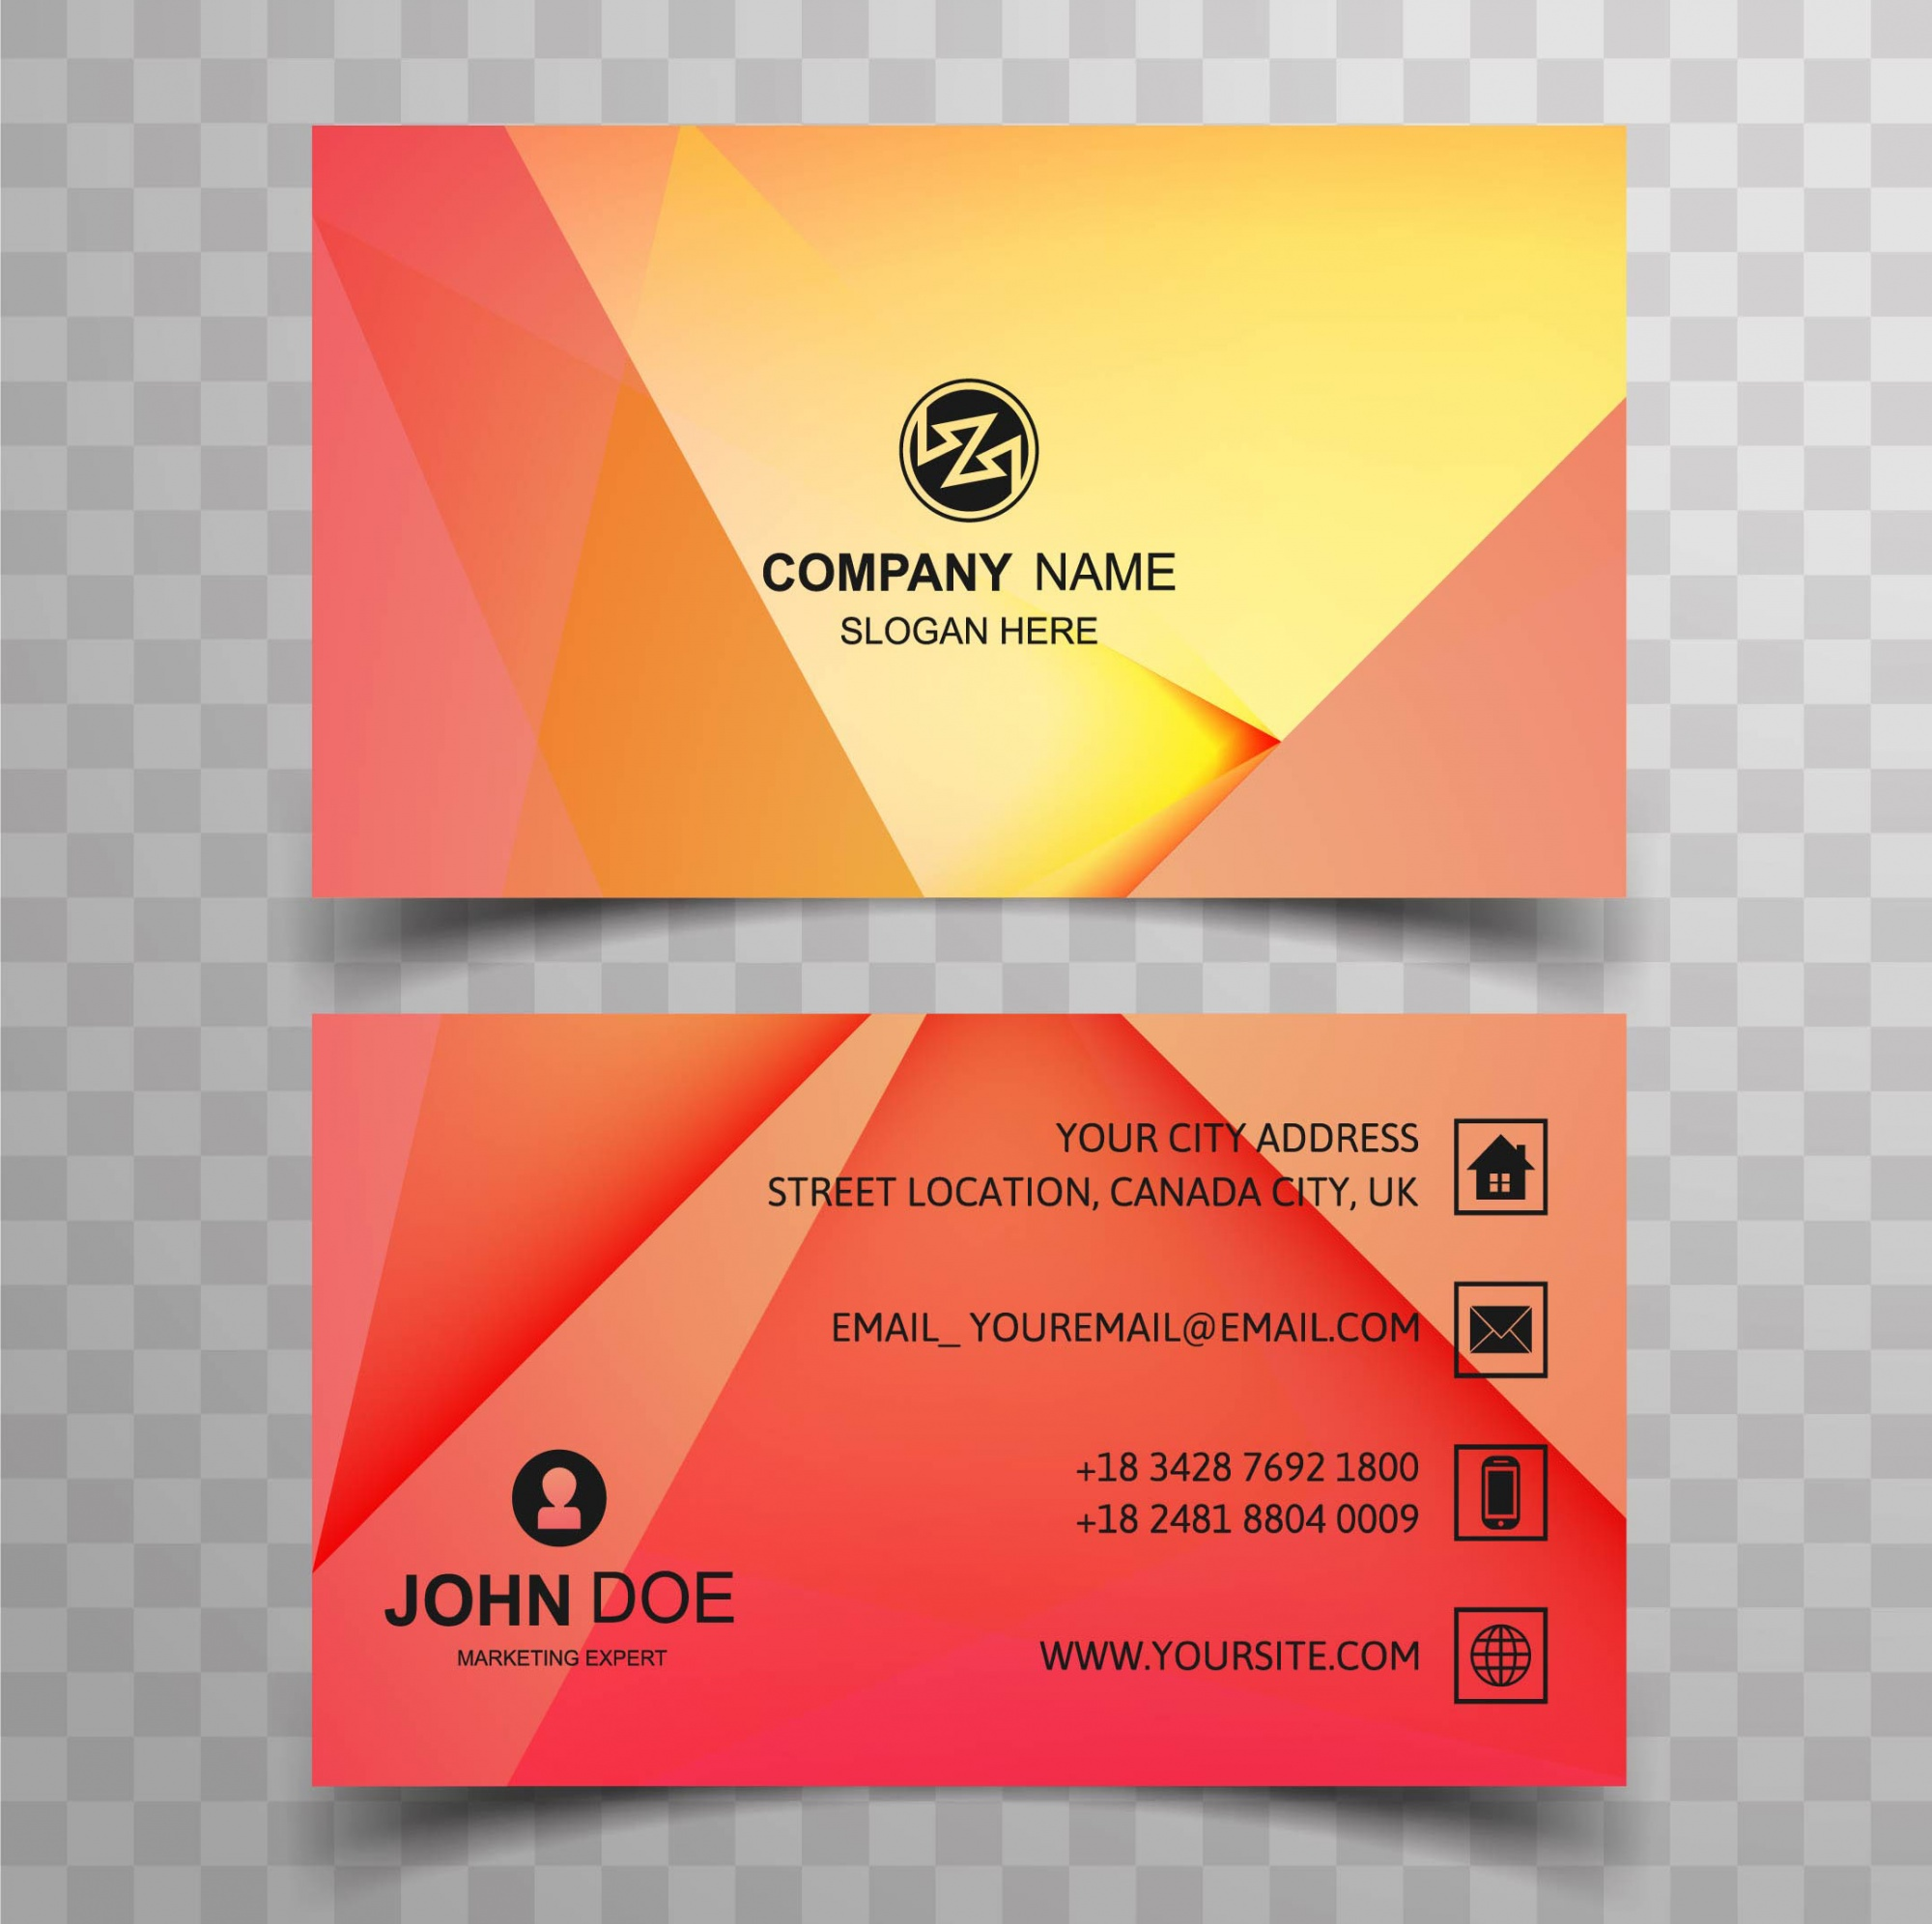 Colorful geometric business card